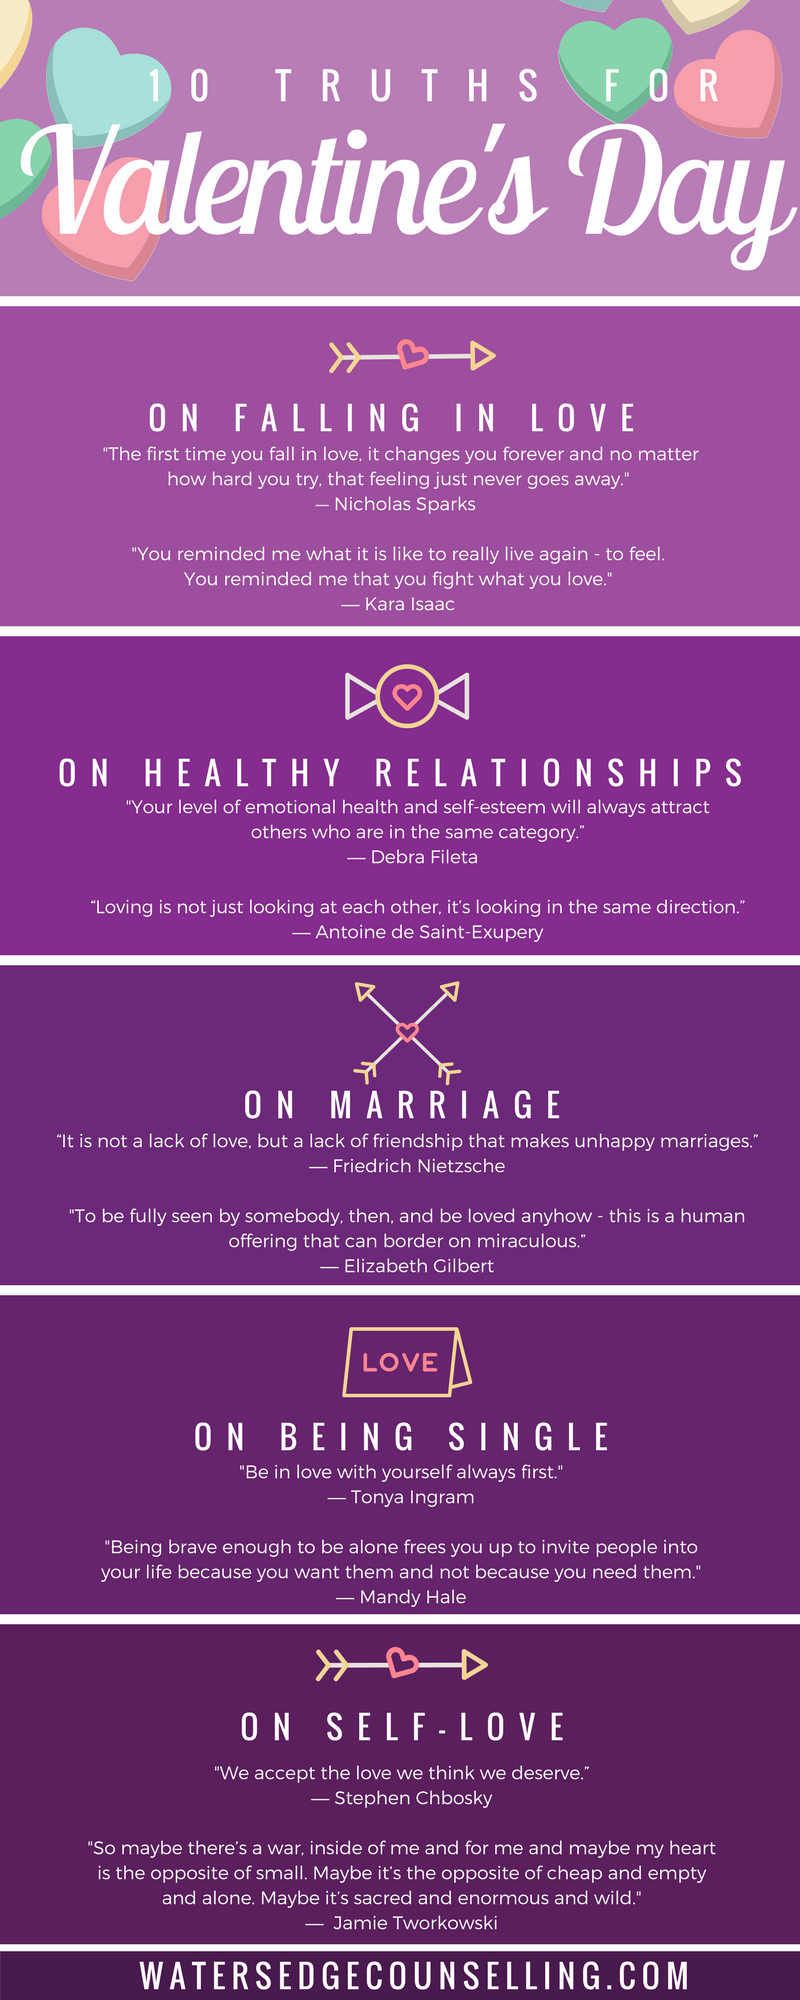 Valentines Day infographic quotes